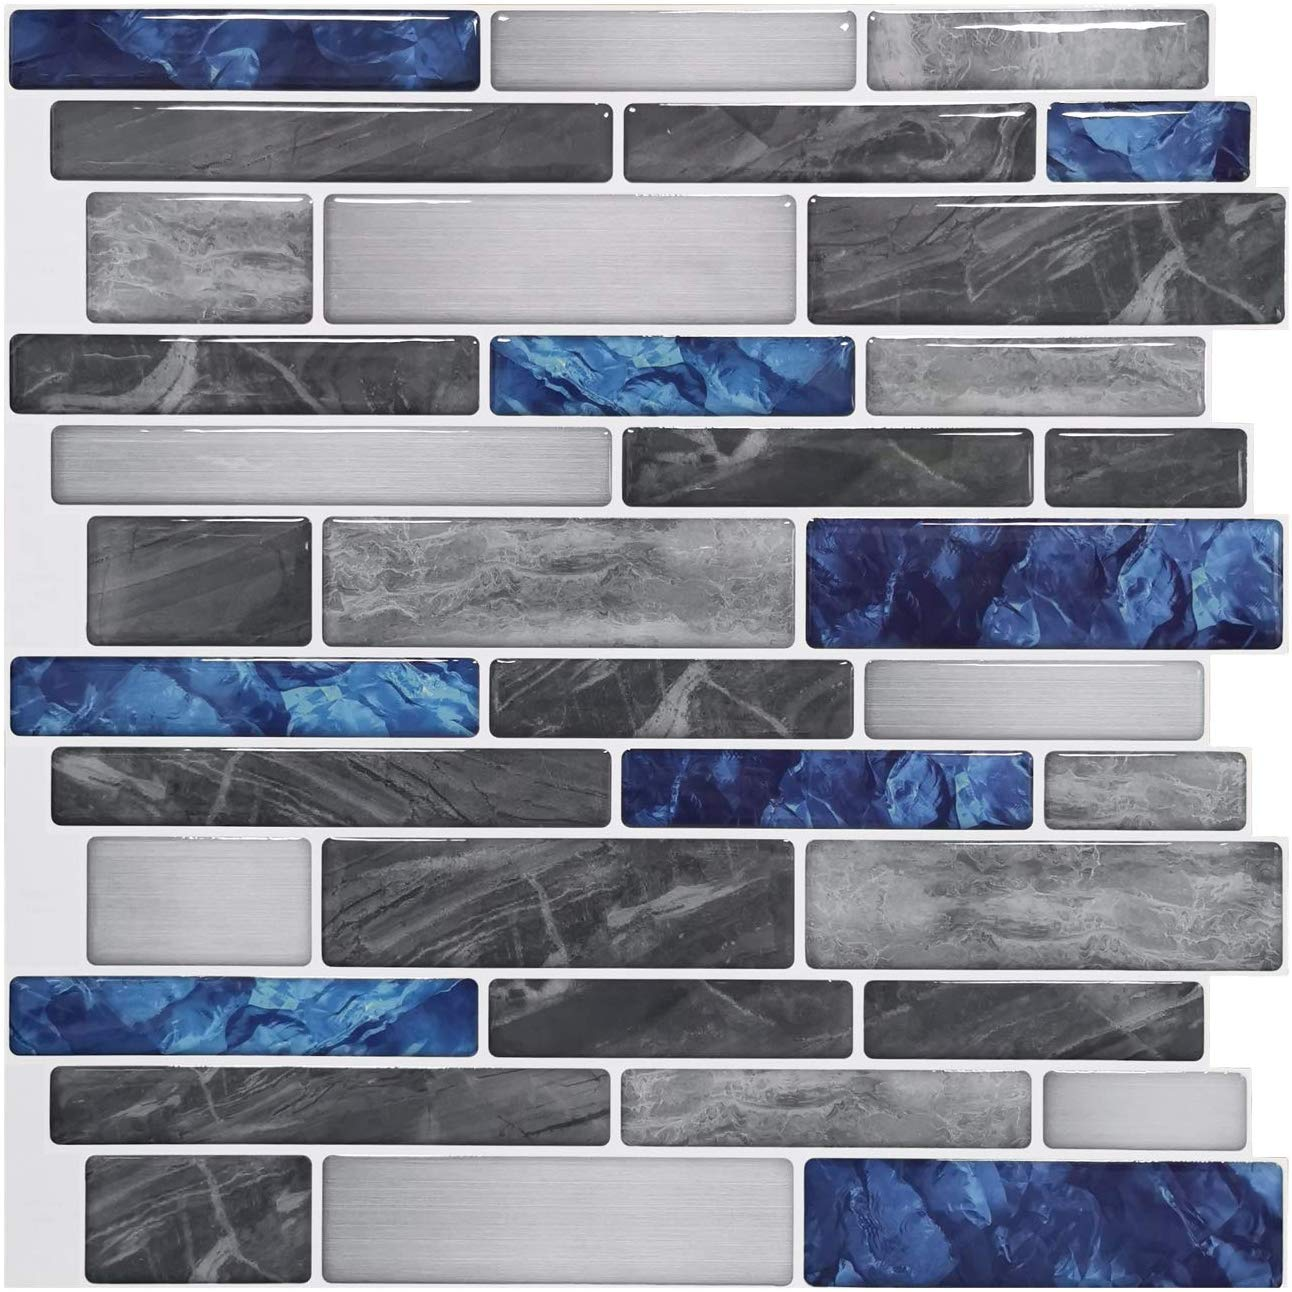 A17011 - Light 3D Mosaic Tile Peel and Stick Backsplash 10 Pieces 9.5 Sq.F